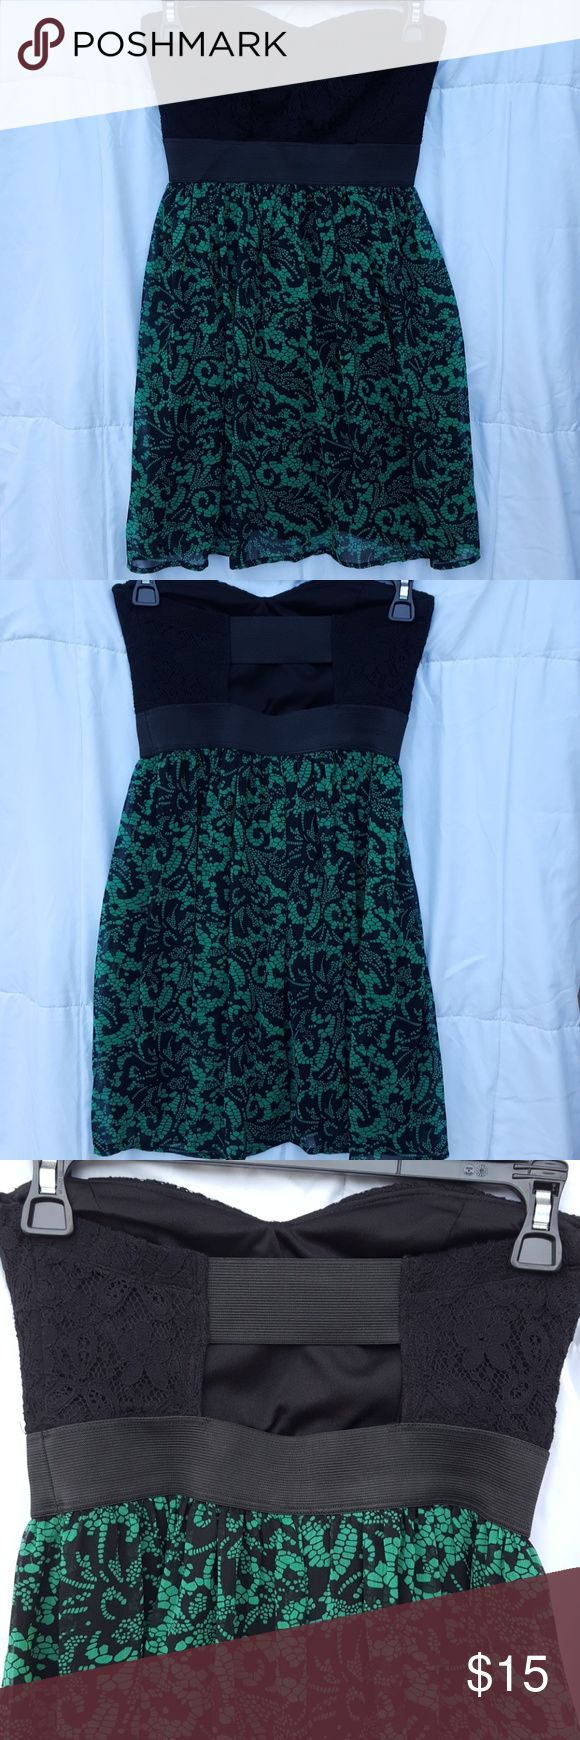 💥SALE💥 Wet Seal tube top dress 💥SALE FOR LIMITED TIME ONLY💥  Flowy tube top dress. Black and green in color. Size small. Wet Seal Dresses Strapless